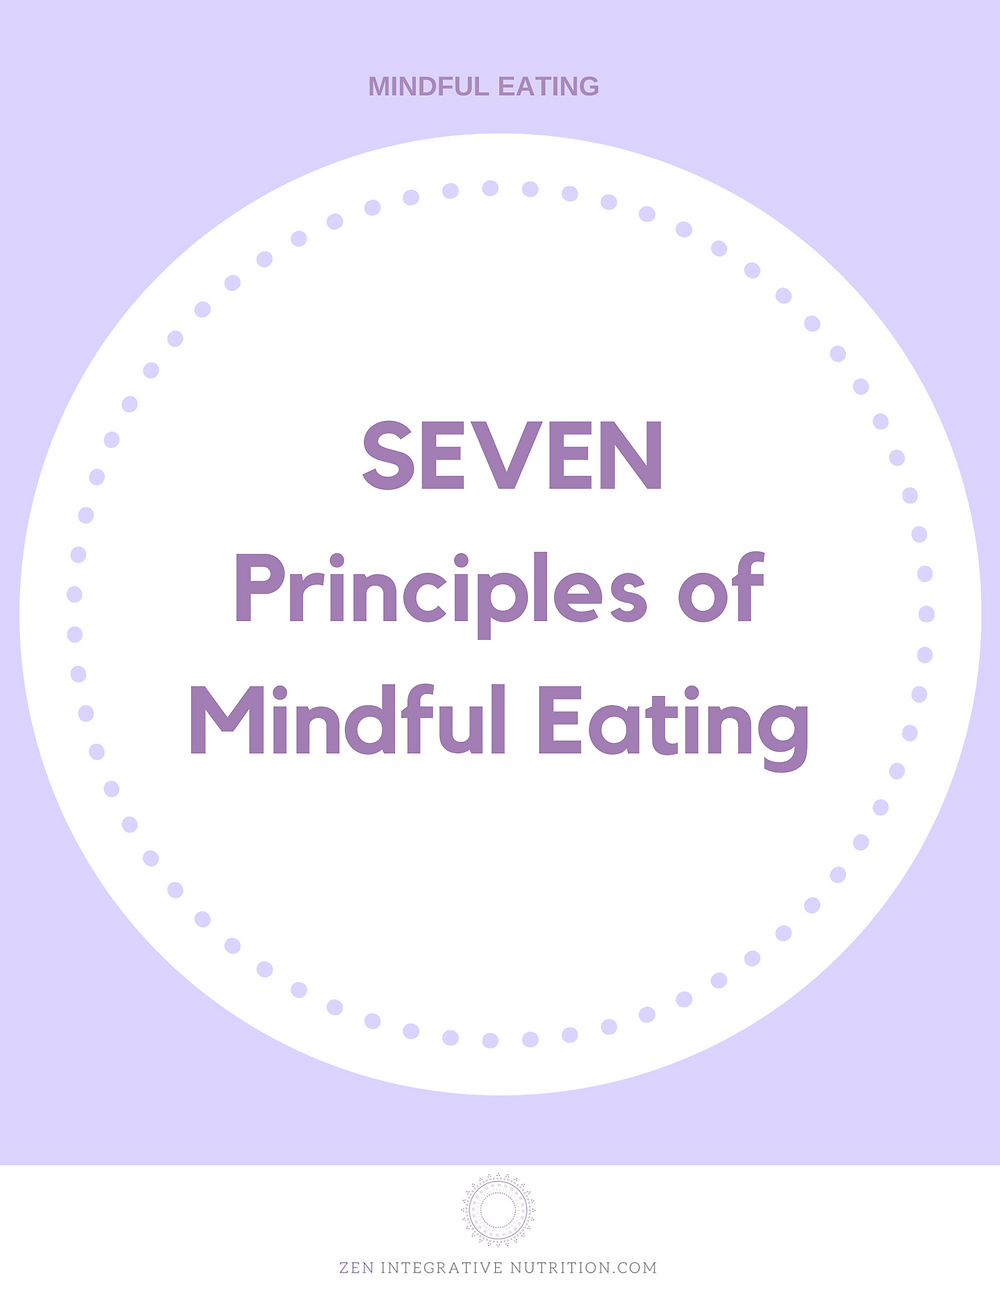 7 Principles of Mindful Eating